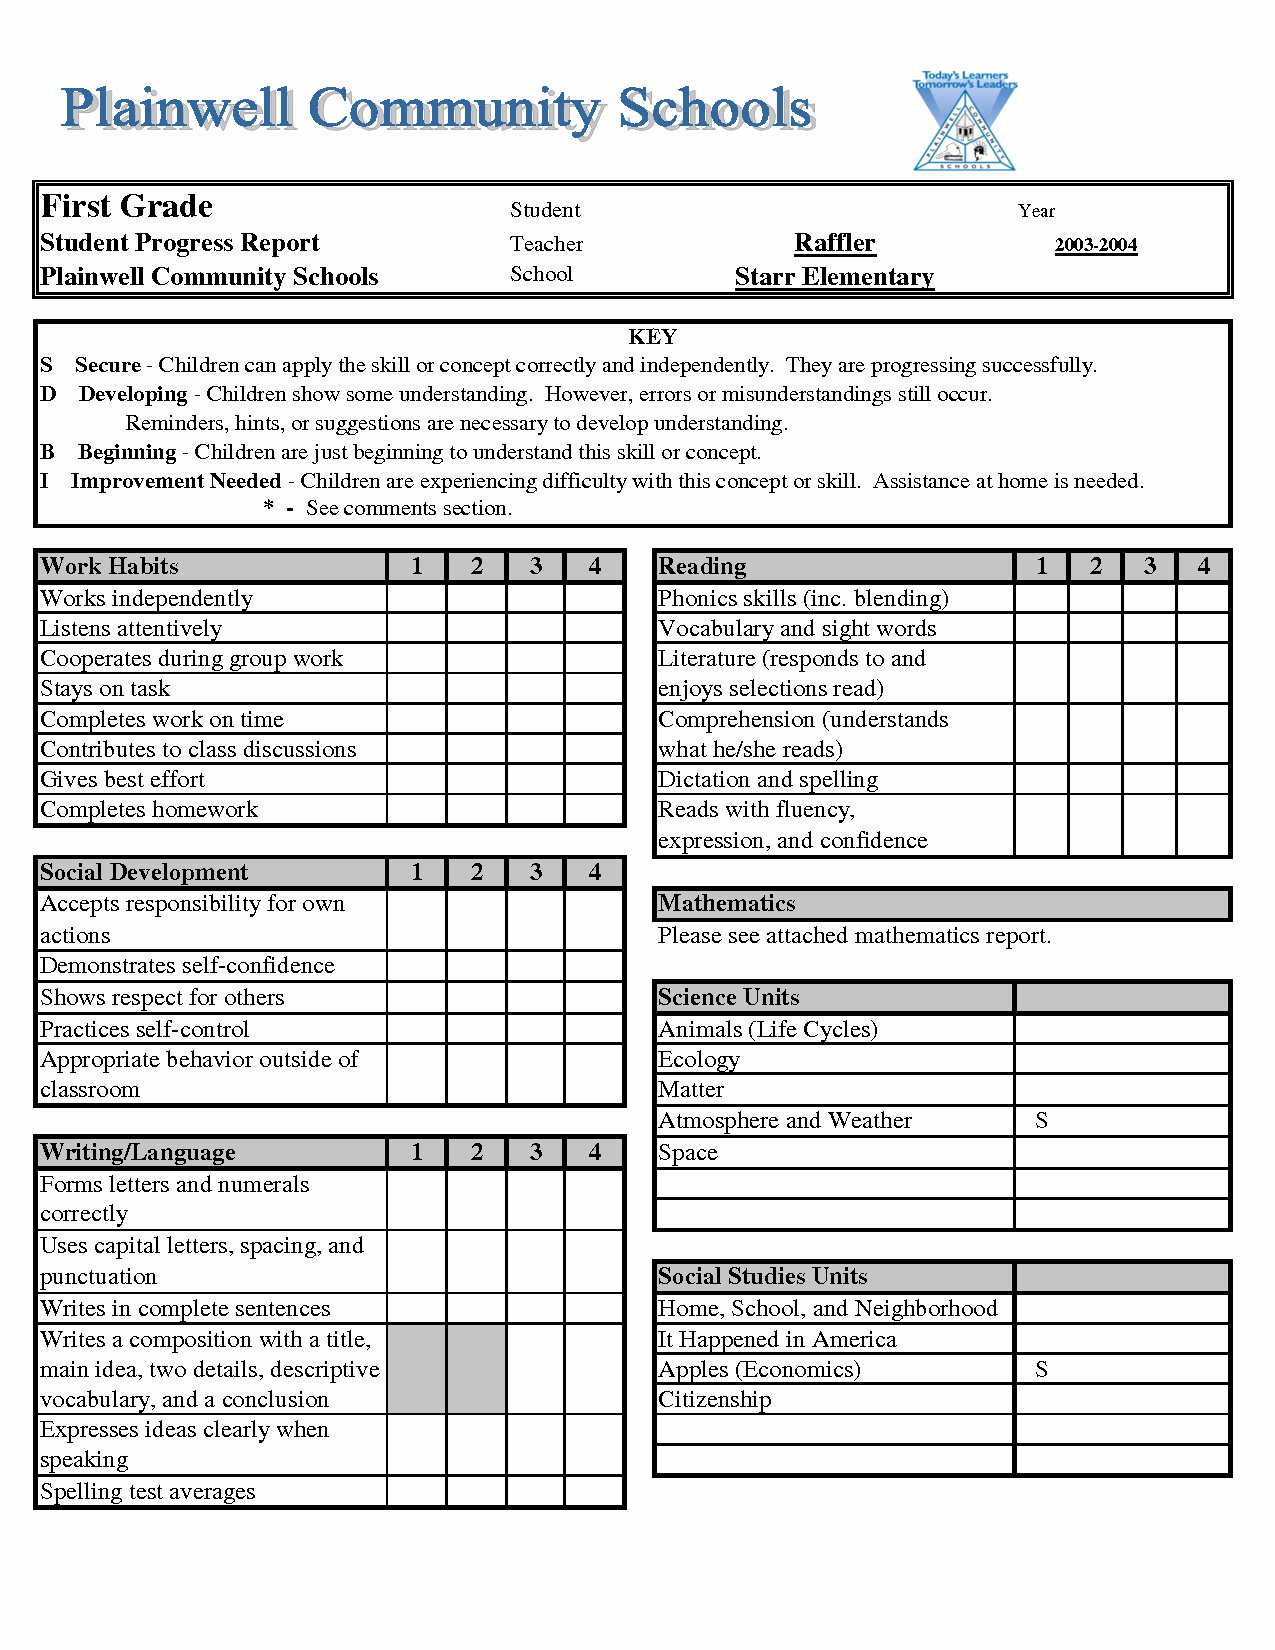 Report Card Template Word Awesome Report Card Template Excel Xls Download Legal Documents